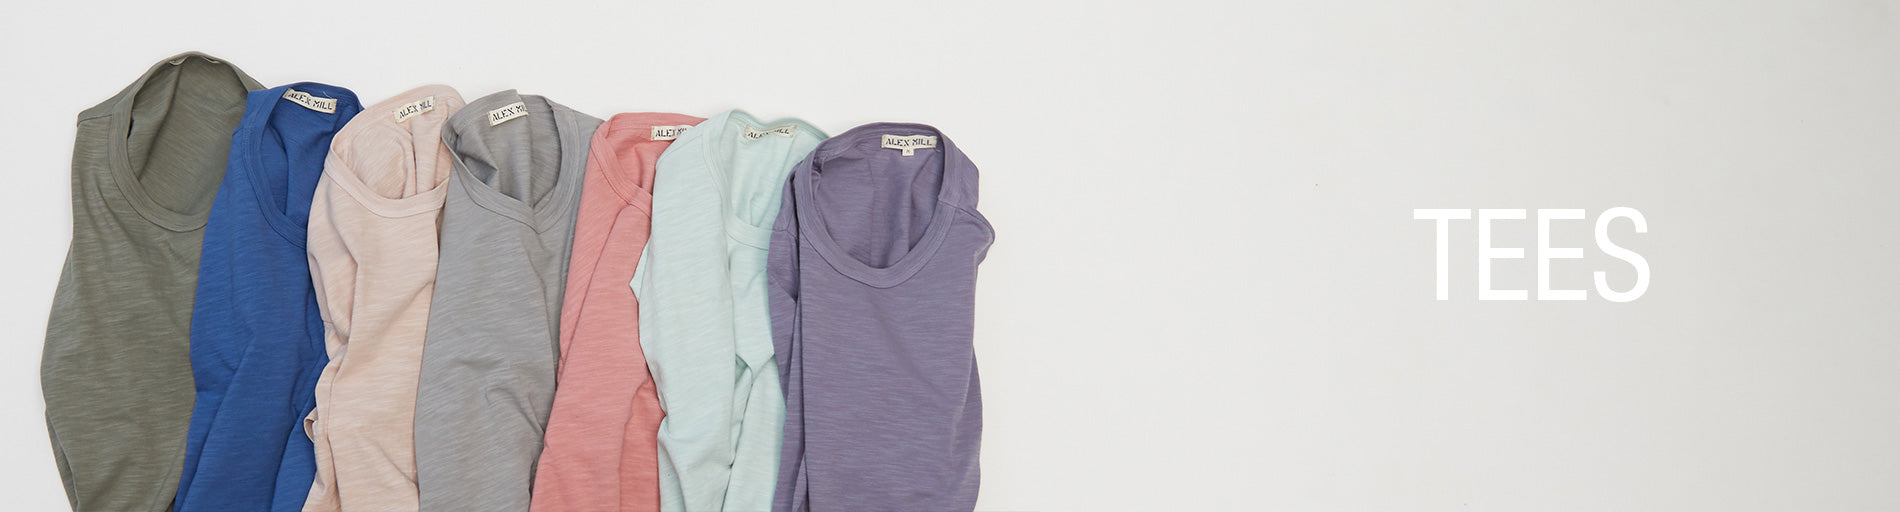 Tees and Henleys